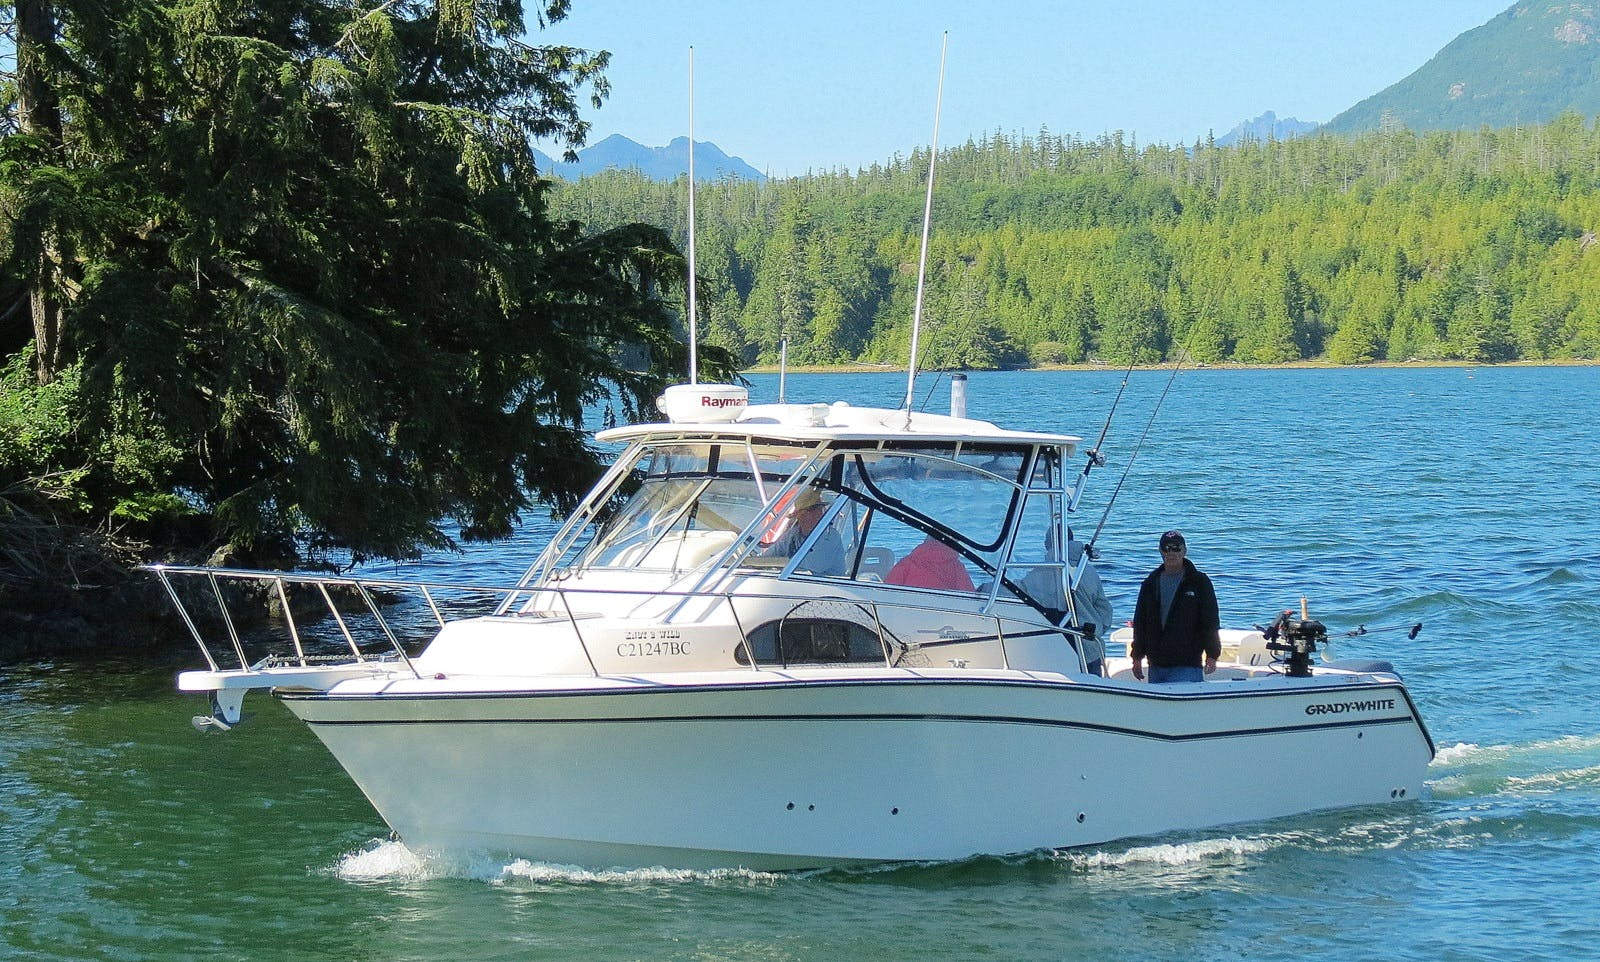 Wild Pacific Charters Ucluelet BC Canada